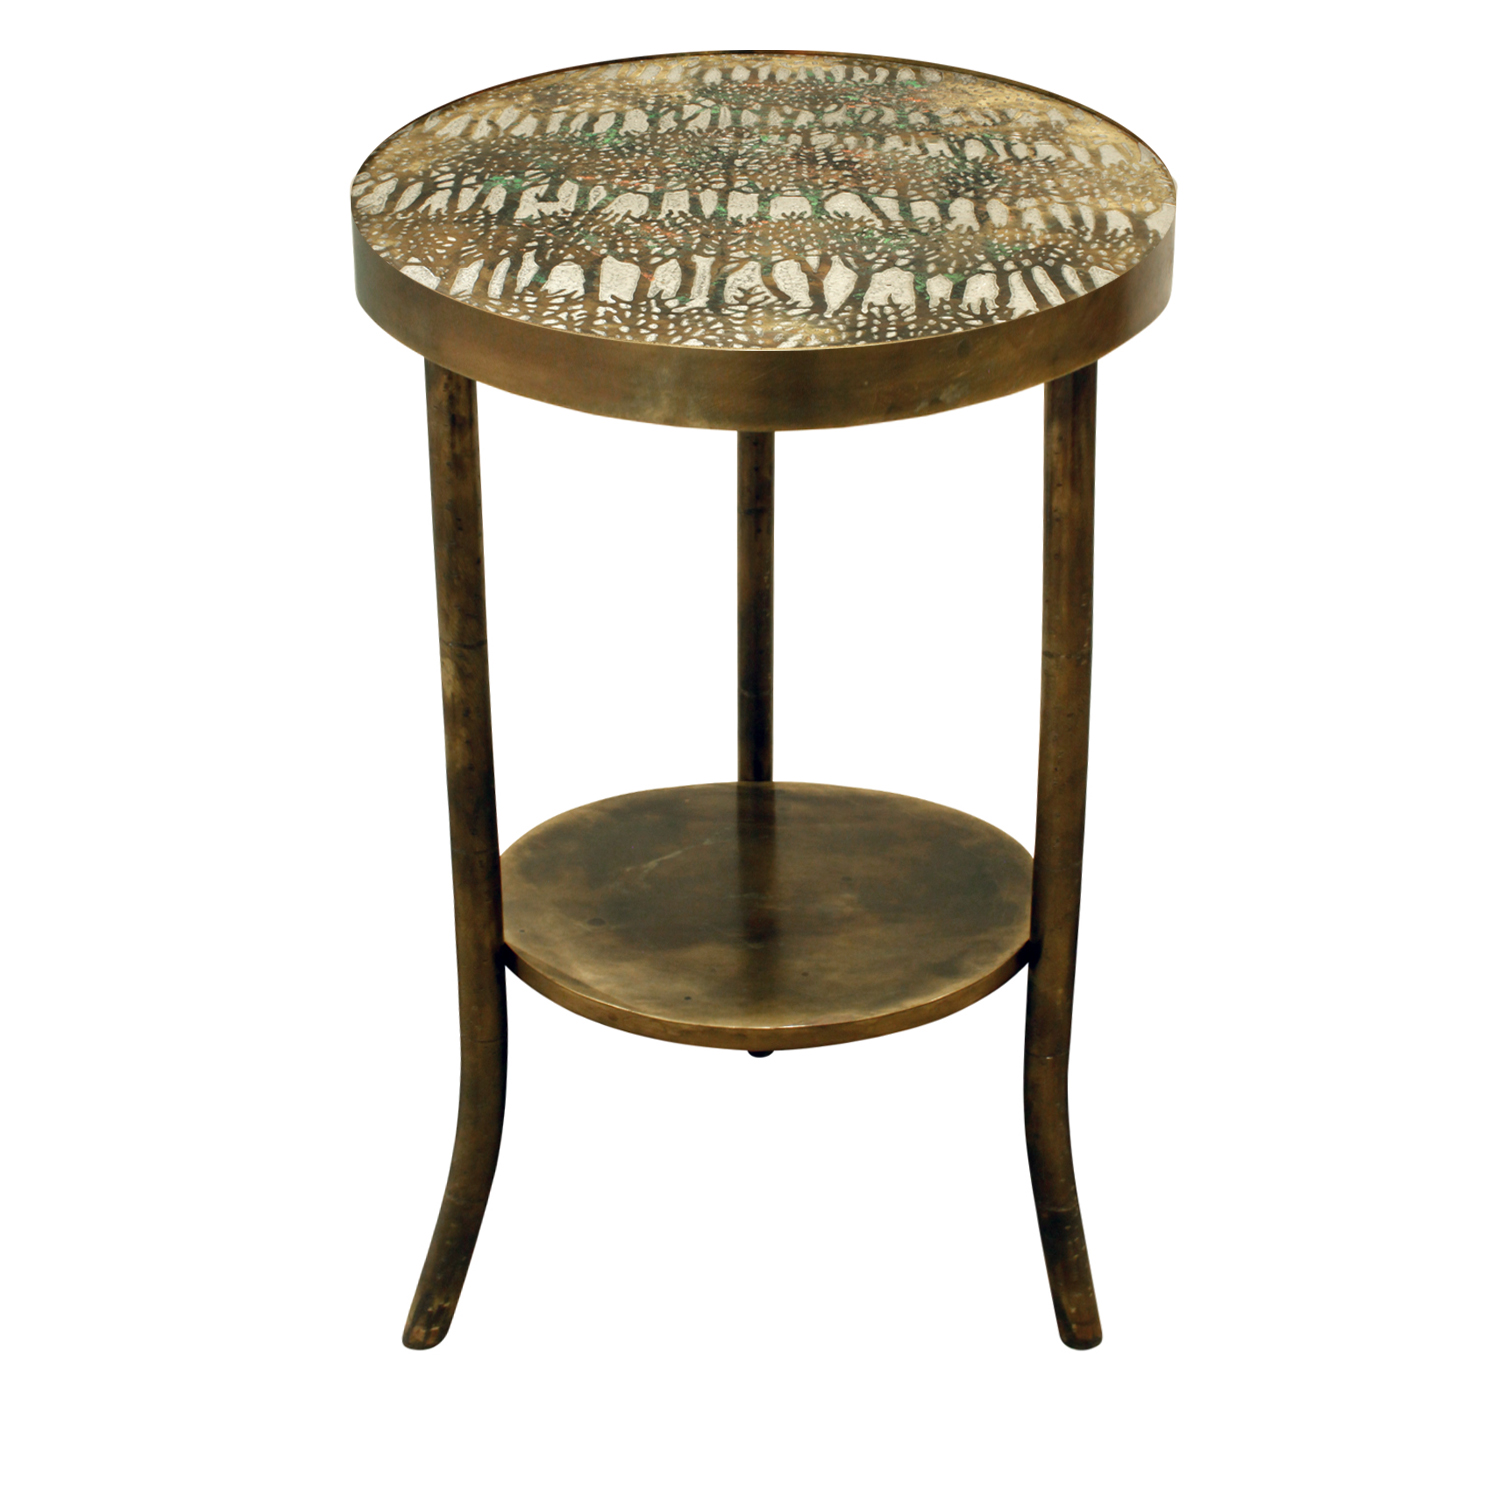 Laverne 150 Eternal Forest small occassionaltable140 frn2t.jpg